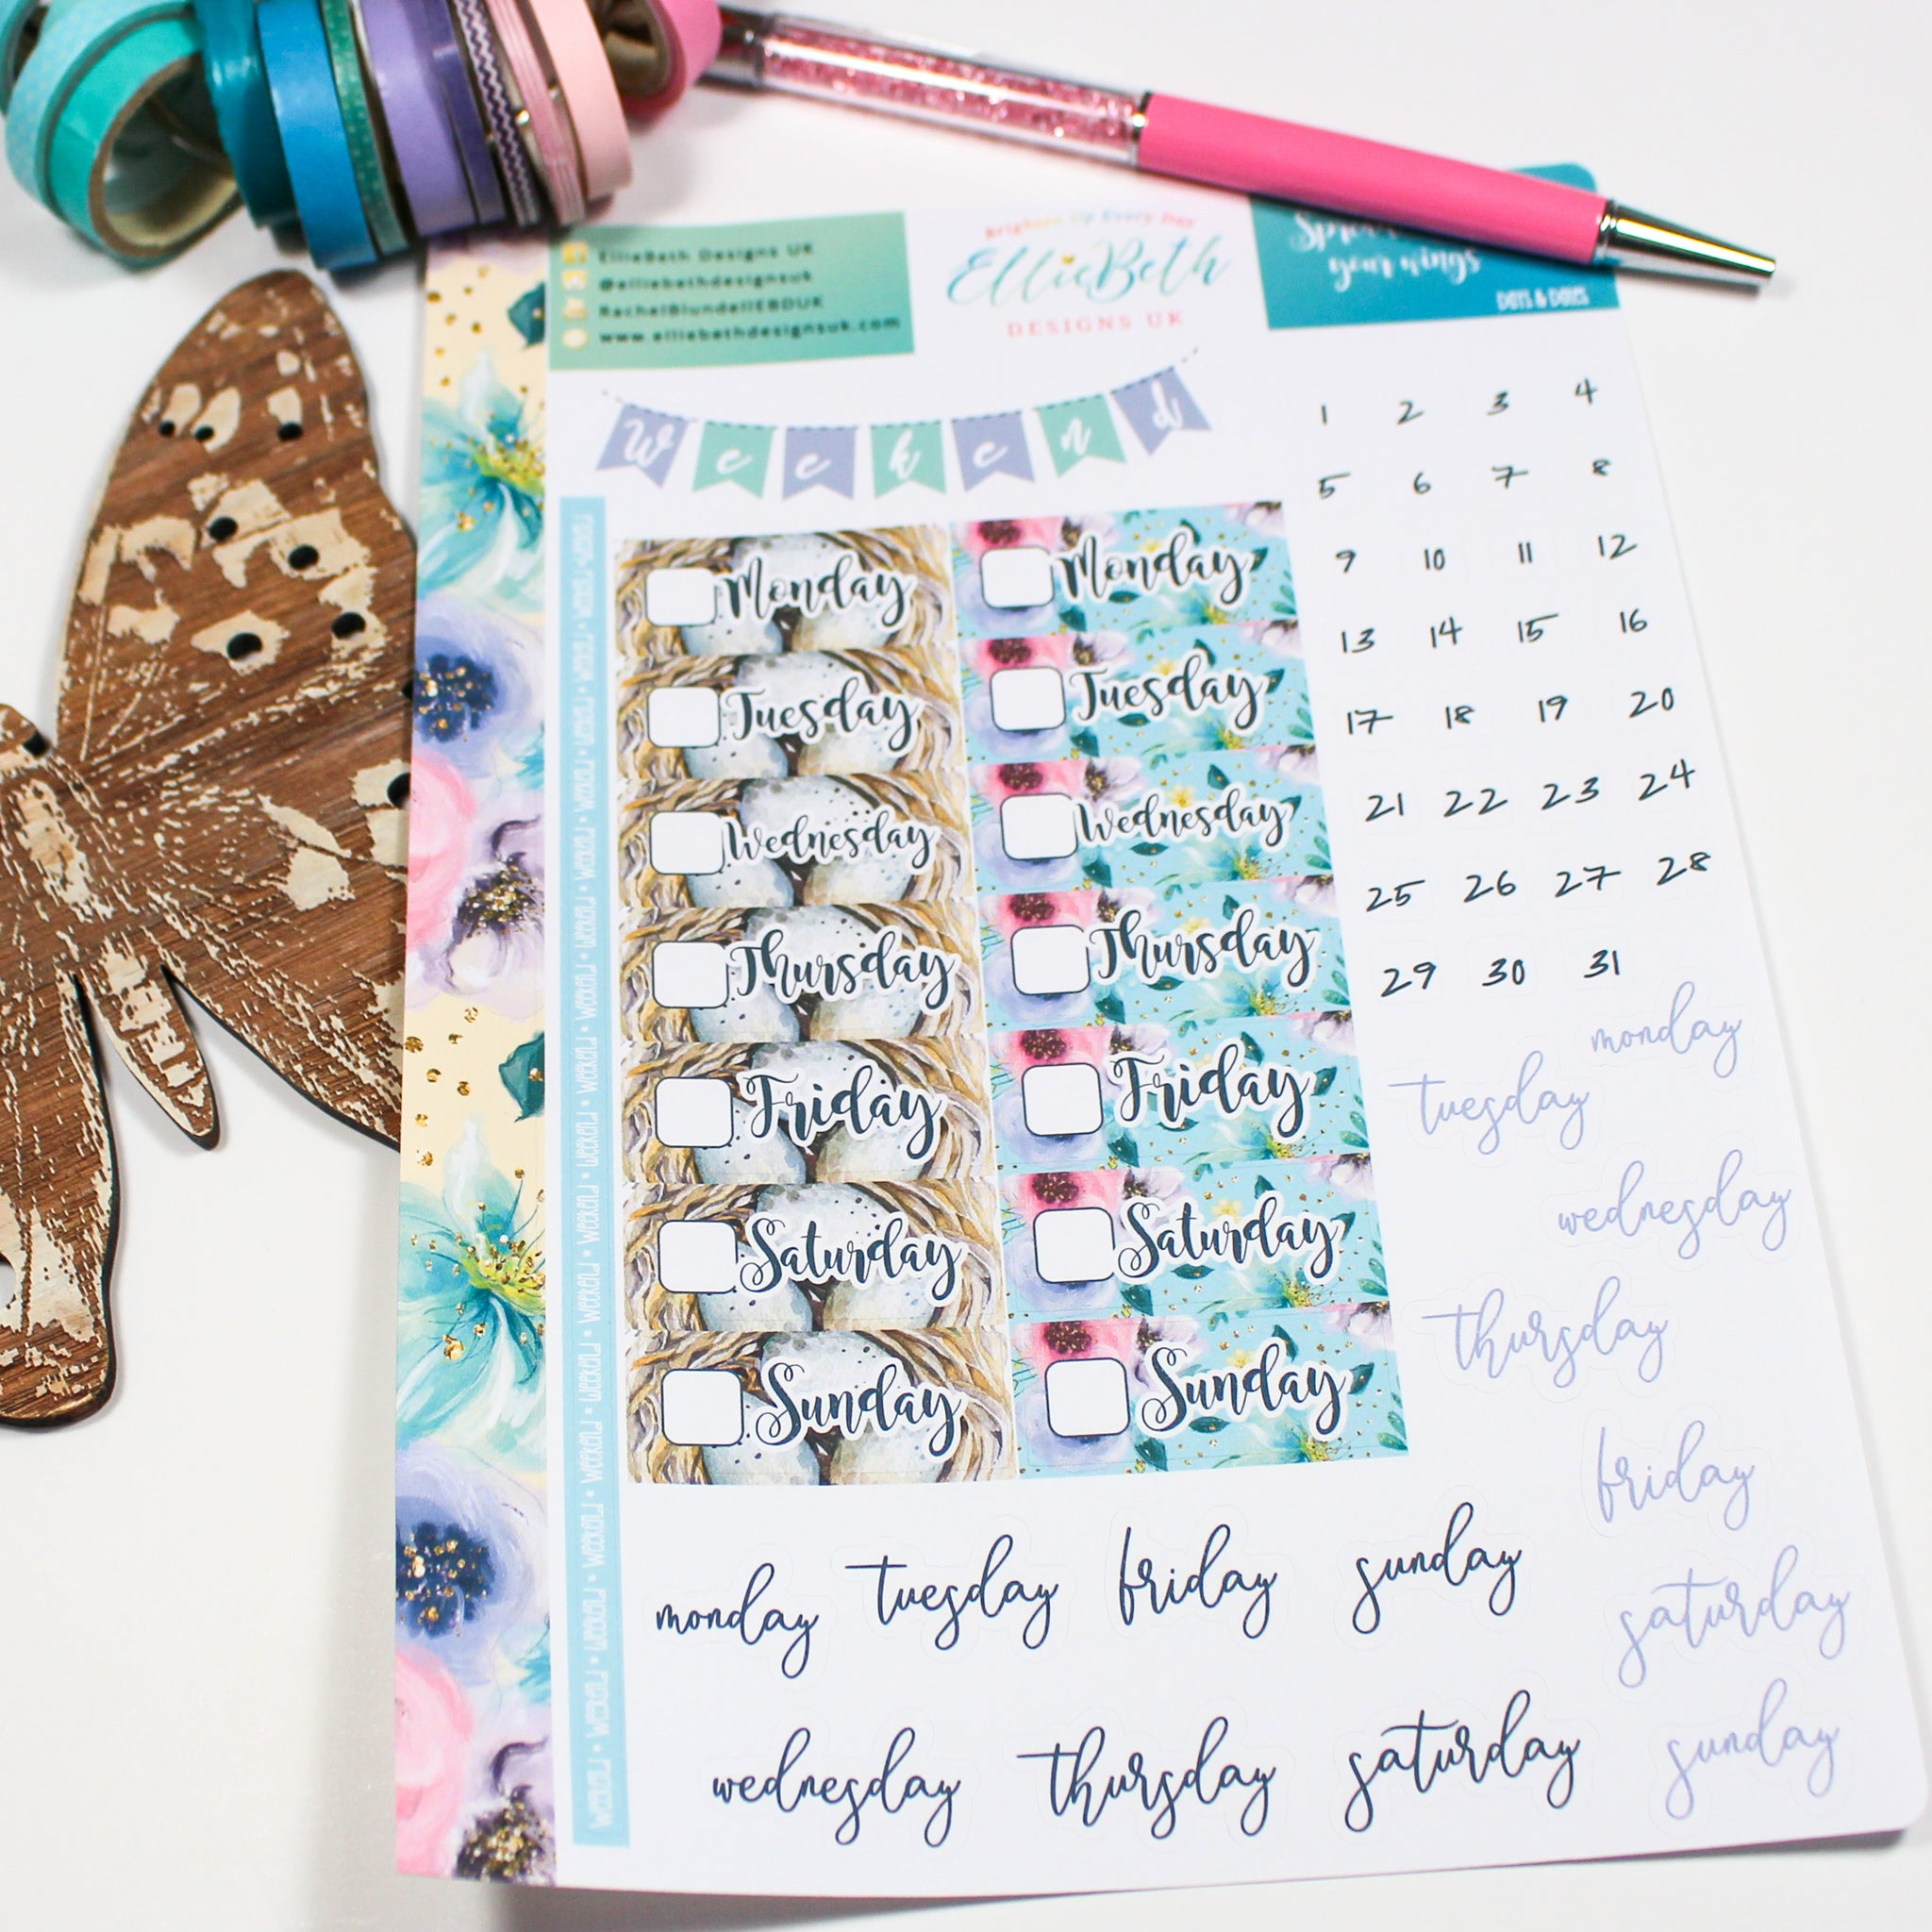 'Spread Your Wings' - Days and Dates - A5 binder ready planner stickers